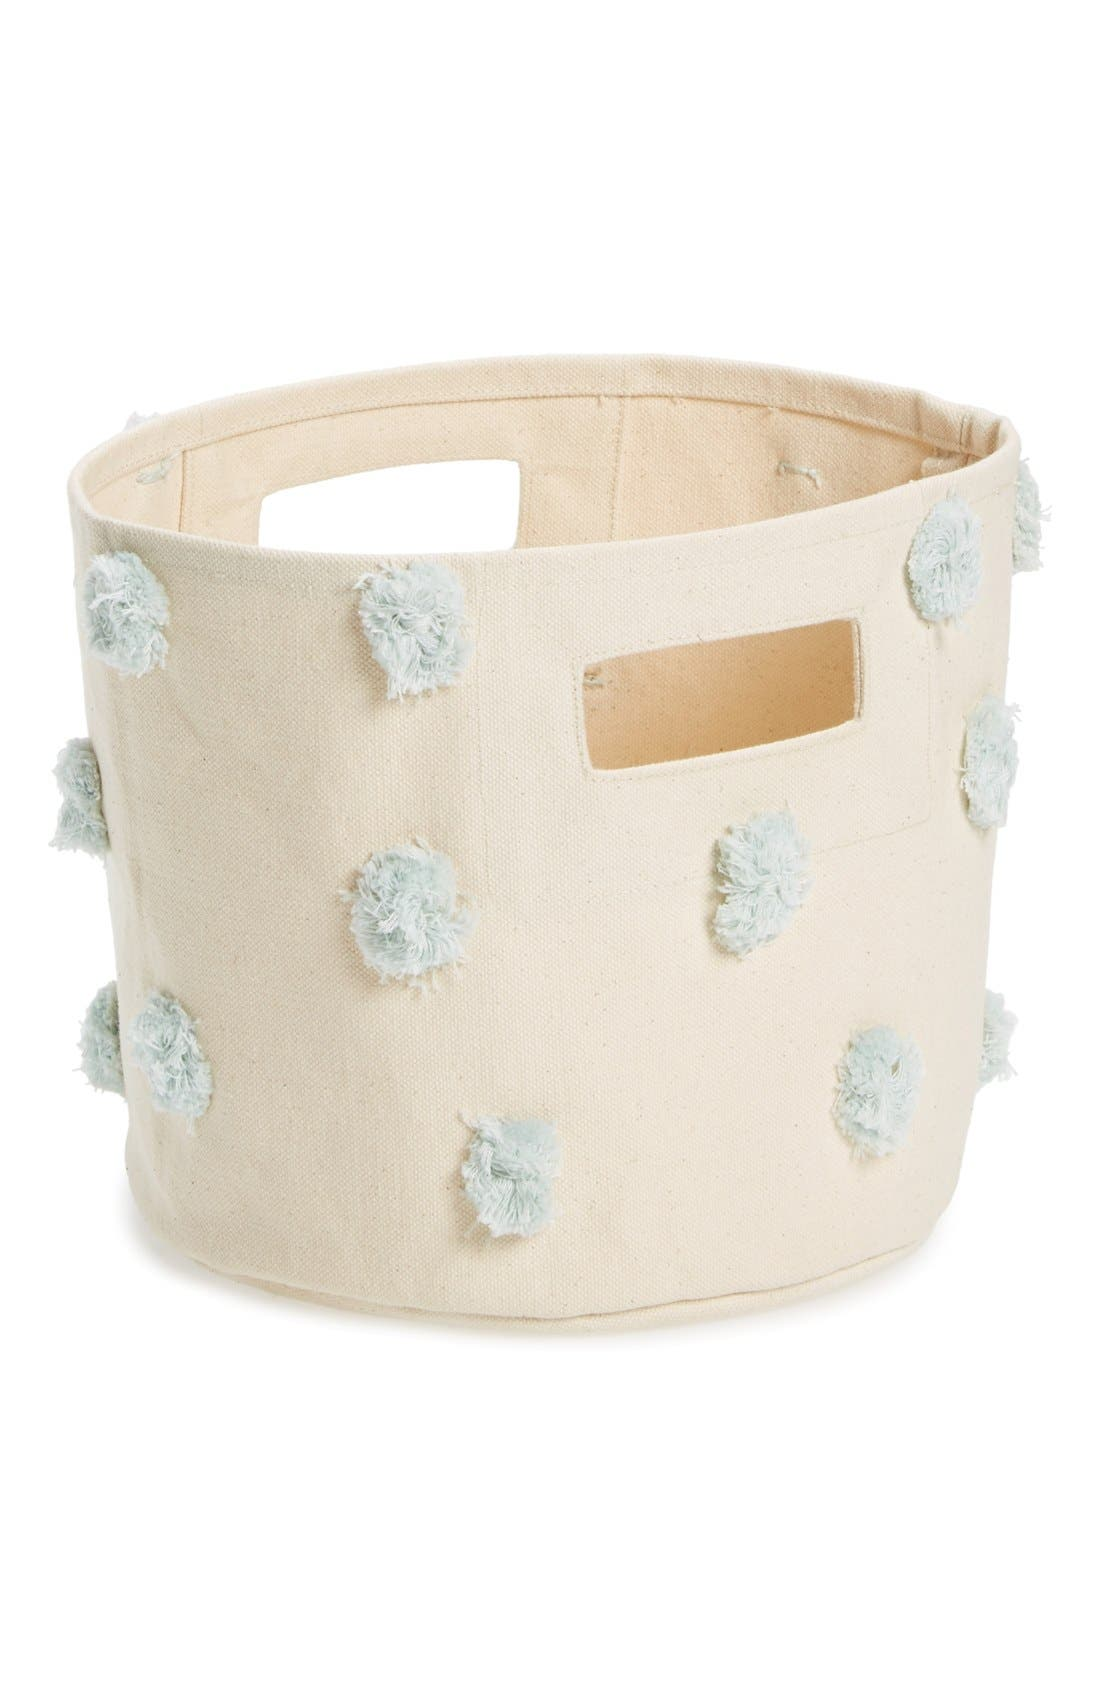 Mini Pompom Canvas Bin,                             Main thumbnail 1, color,                             Mist Blue